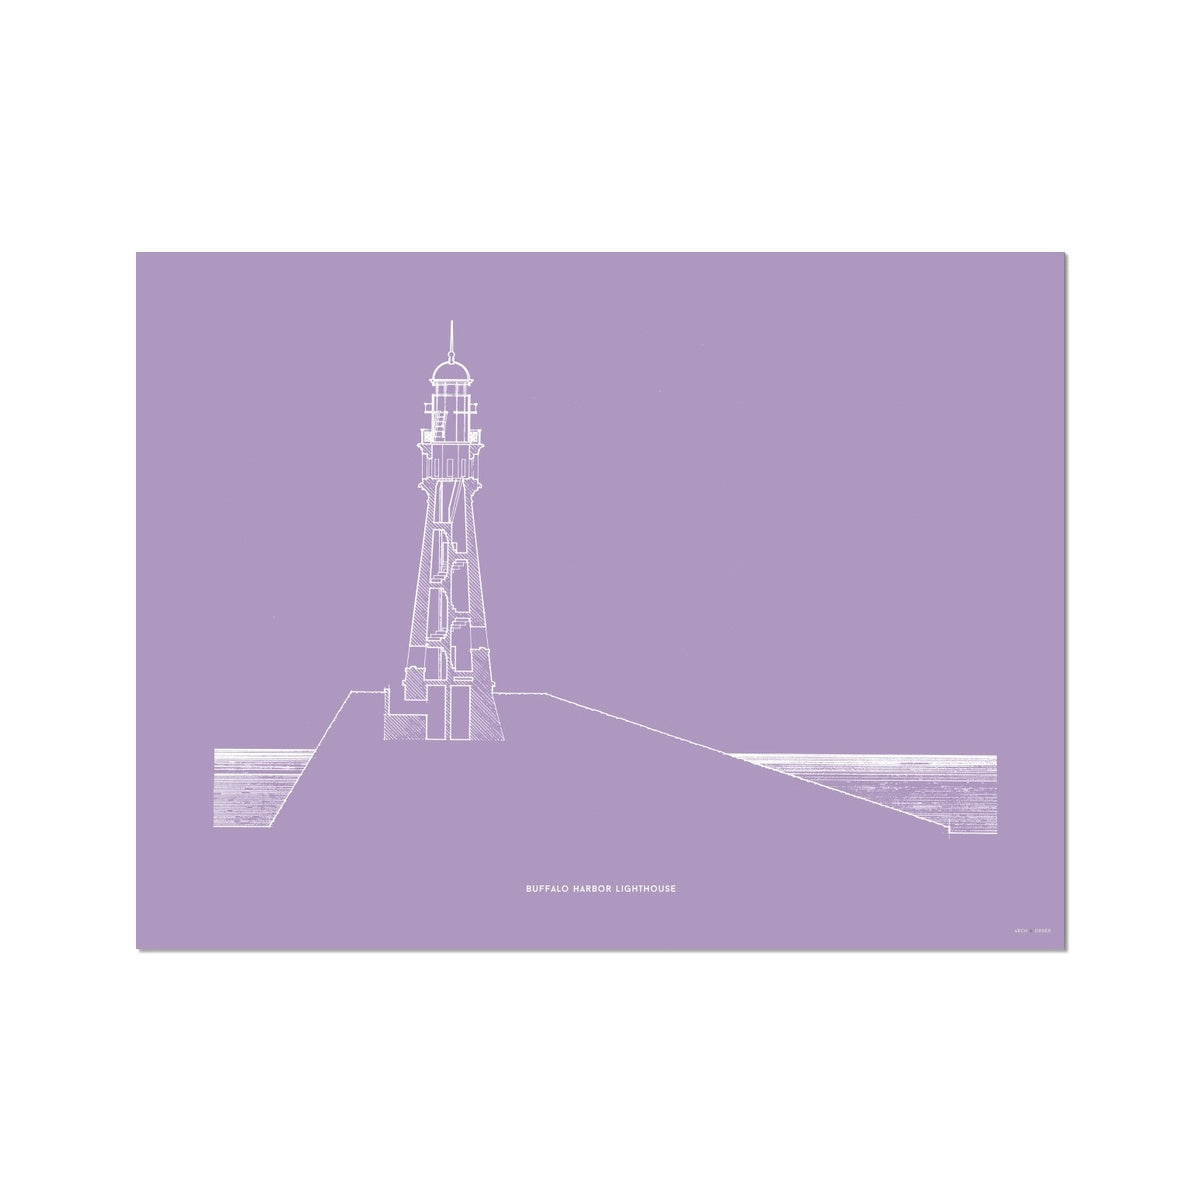 Buffalo Harbor Lighthouse - Cross Section - Lavender -  Etching Paper Print